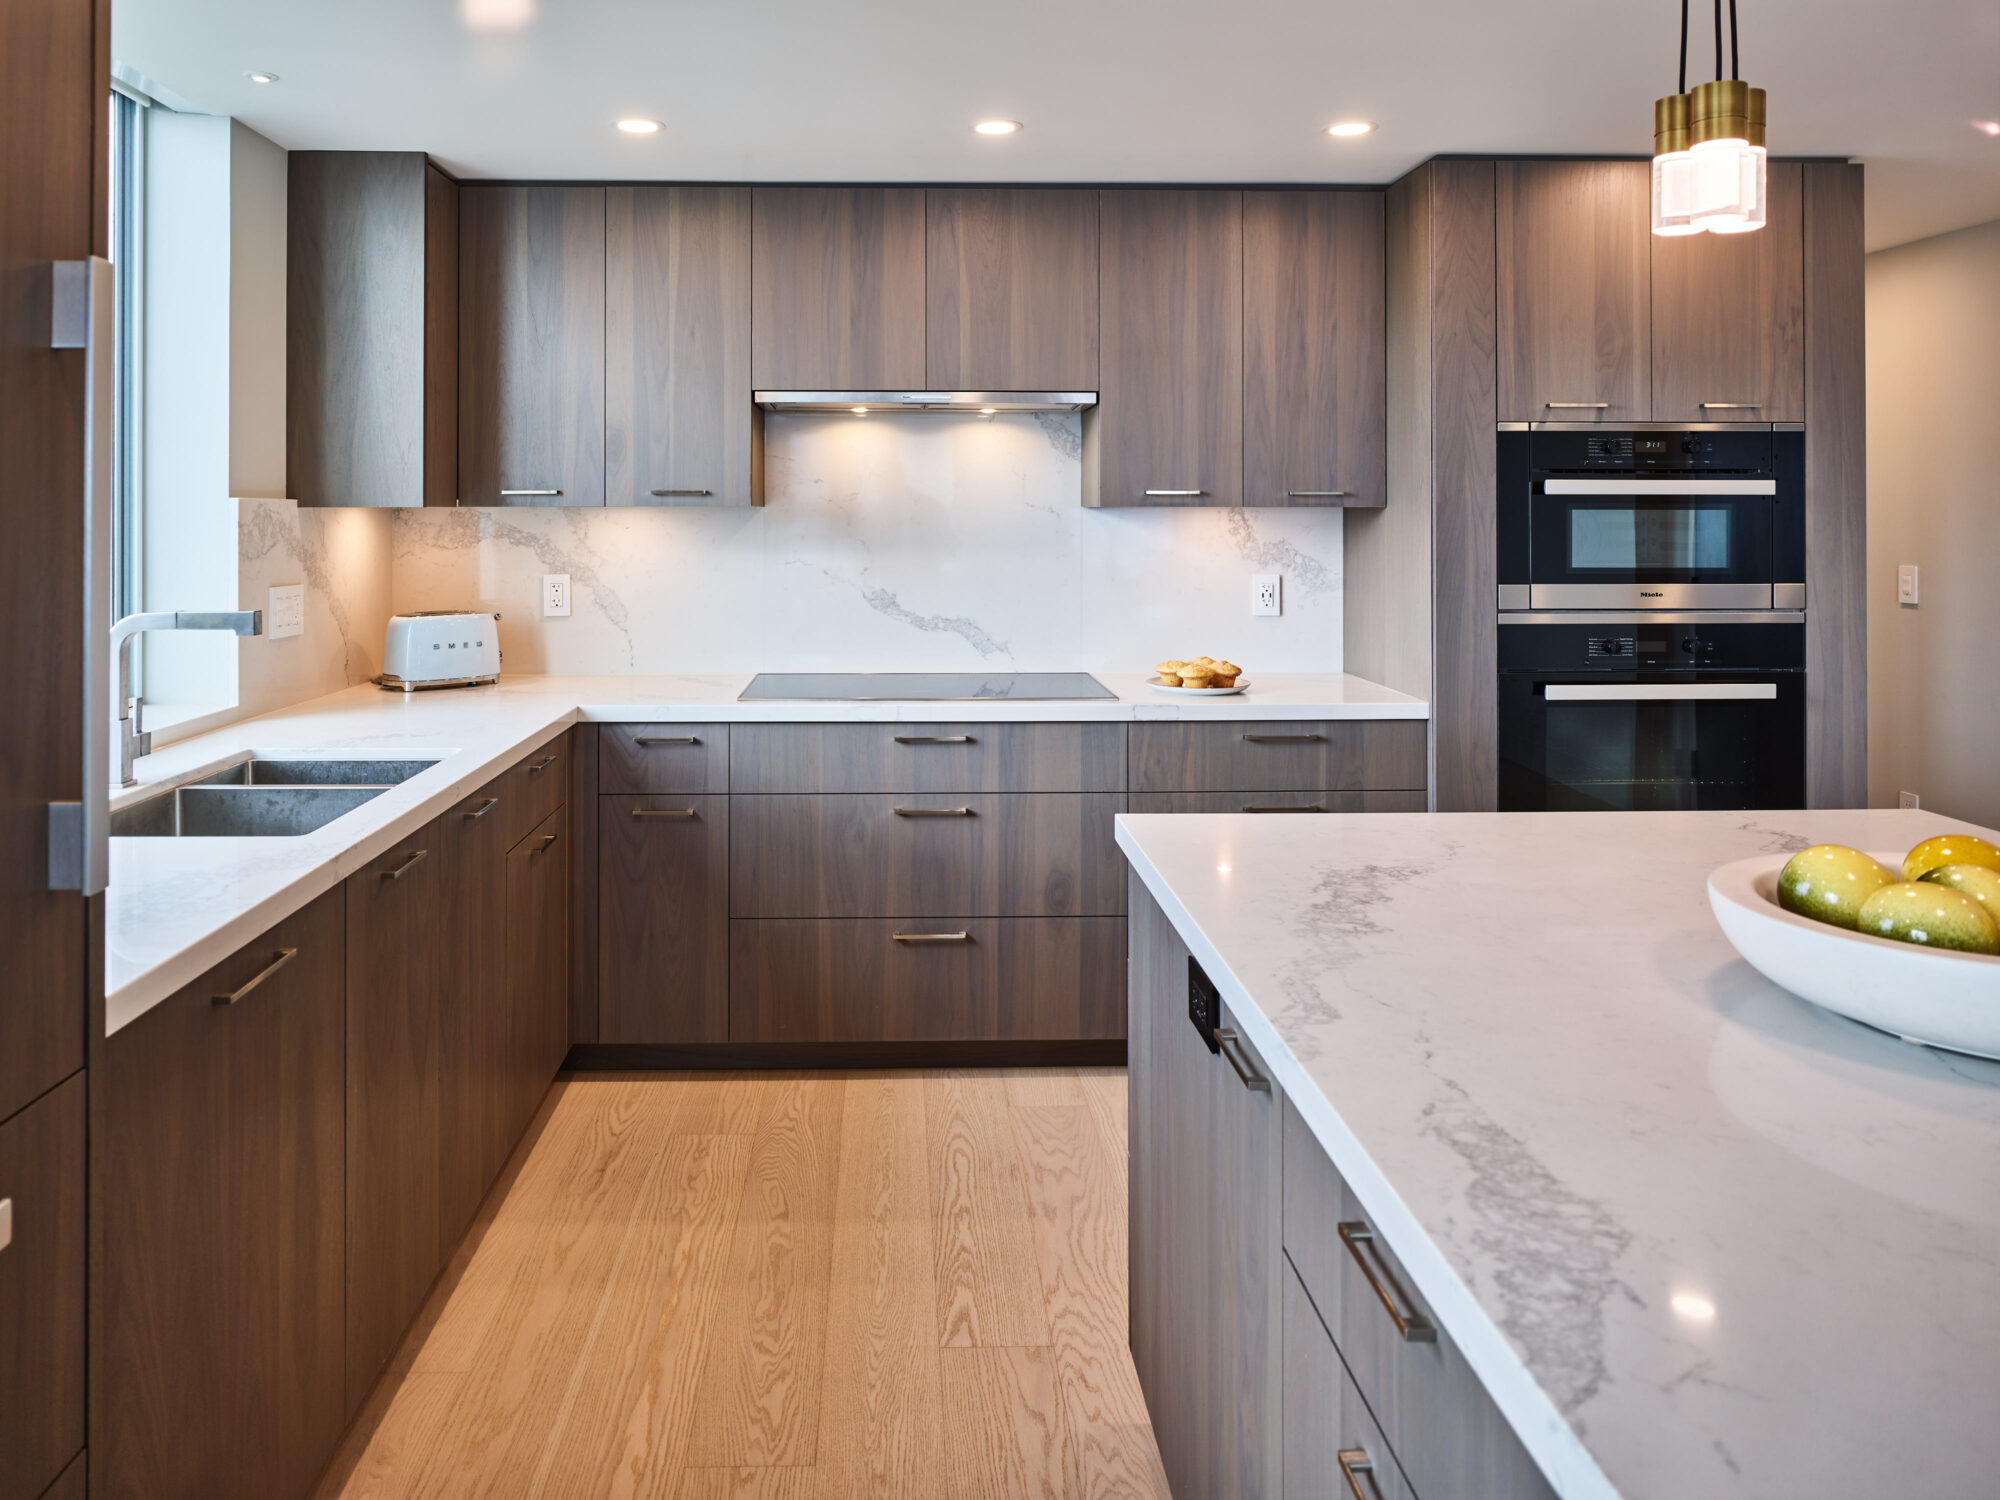 Top 5 Reasons to Hire a Professional North Vancouver Contractor